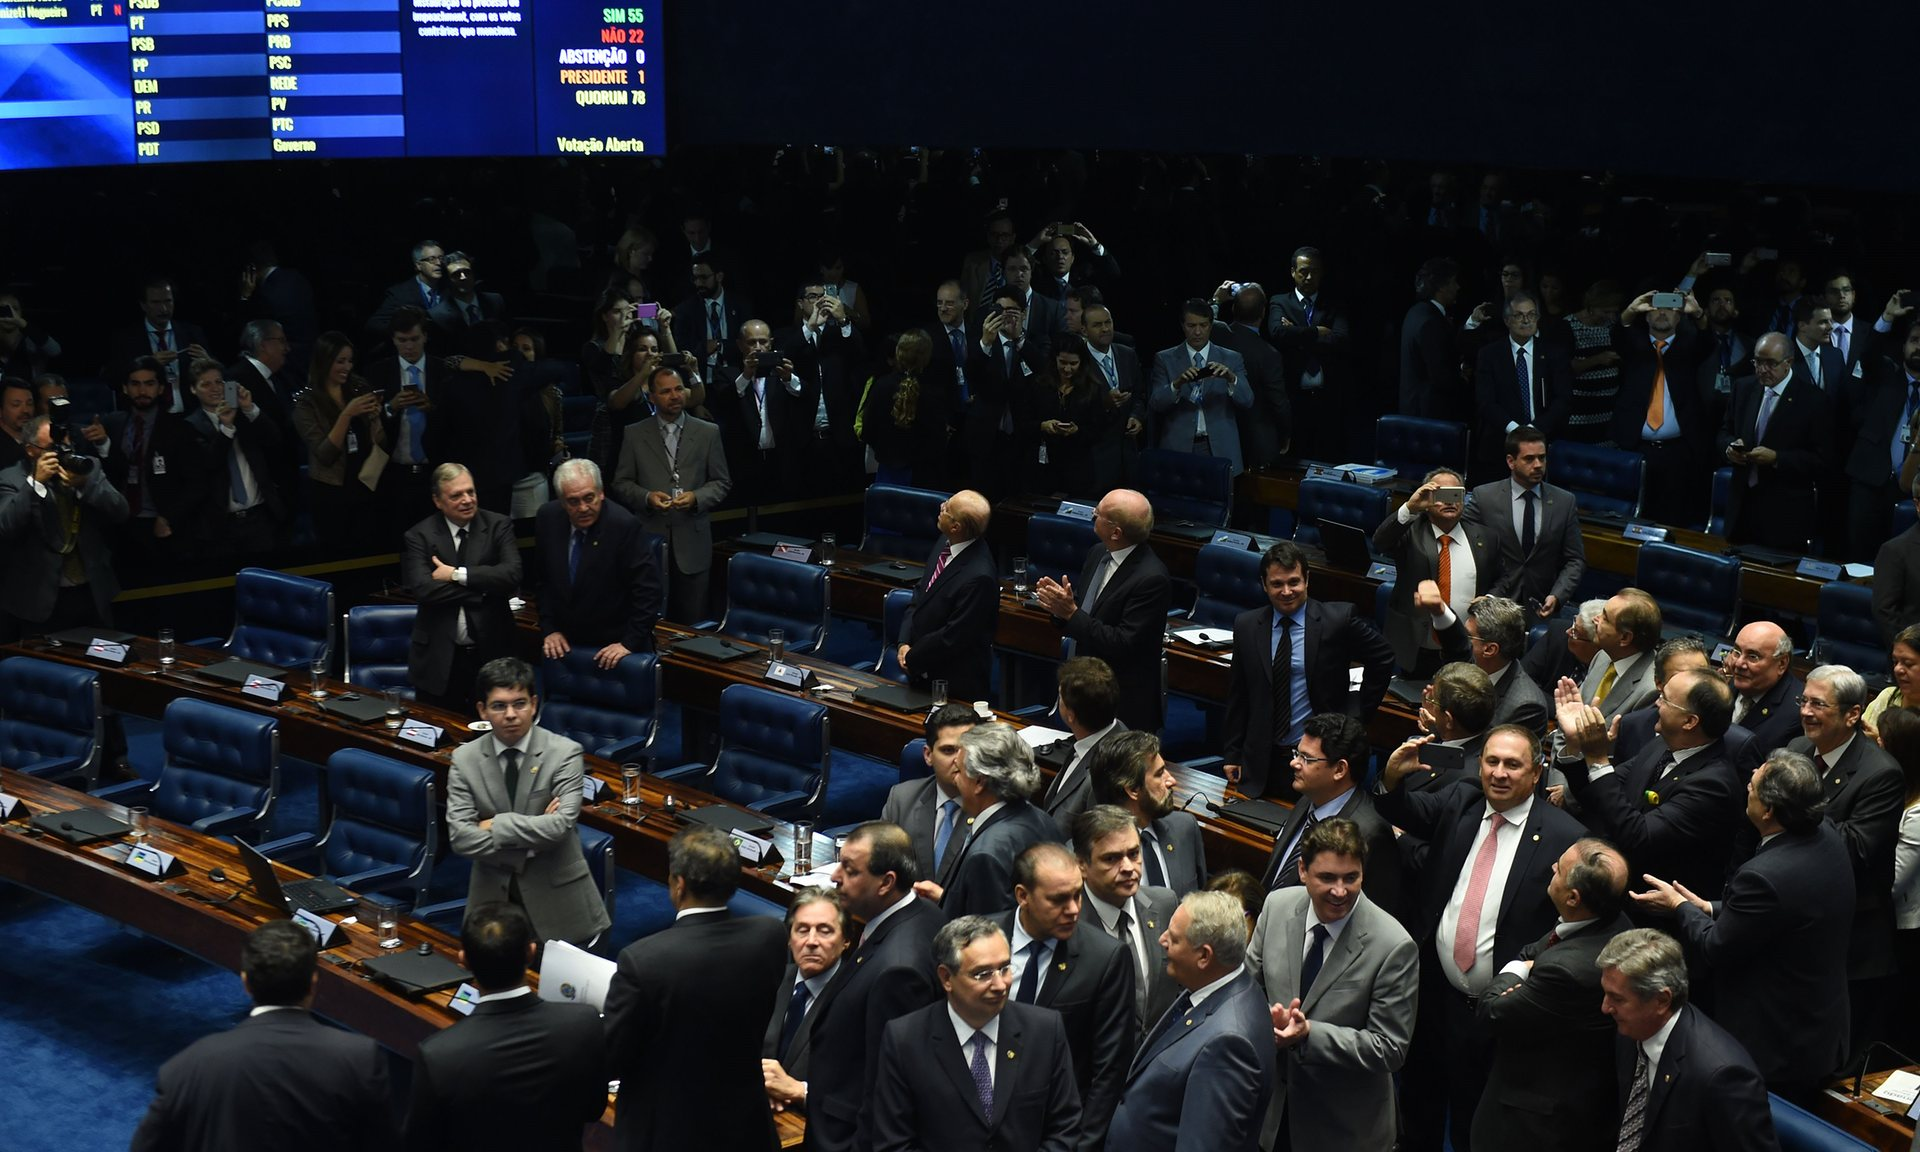 Senators applaud under a large screening displaying the 55-22 vote in favour of impeachment. Source:  The Guardian/Evaristo Sa/AFP/Getty Images